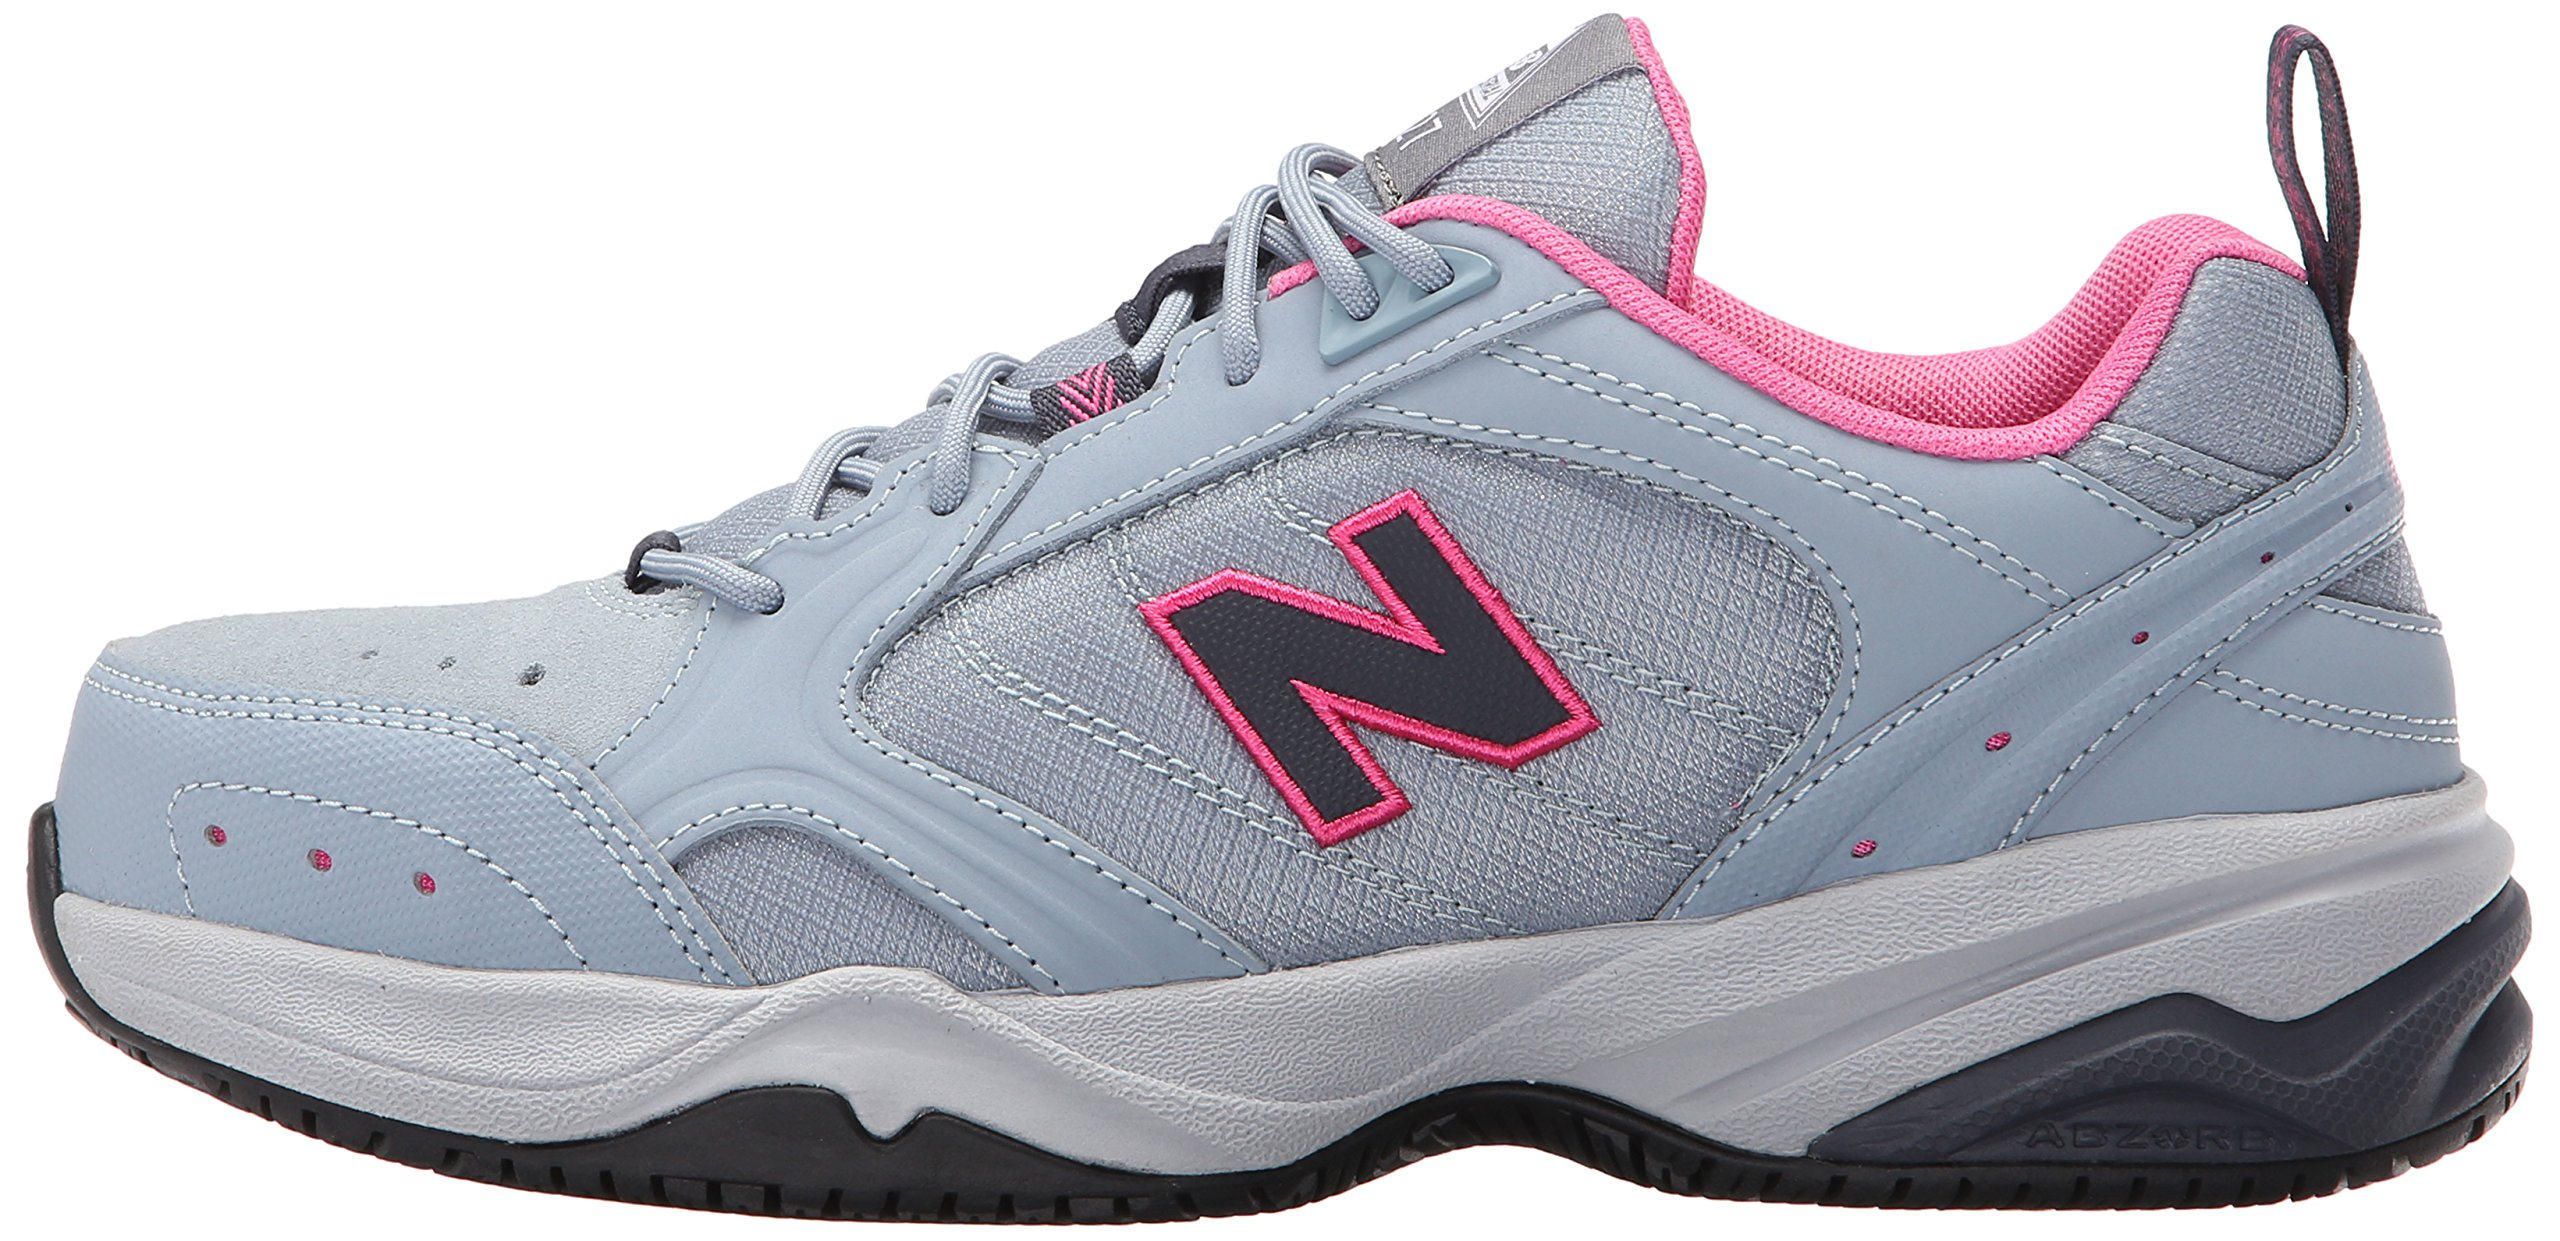 New Balance Women's WID627V1 Steel Toe Training Work Shoe,Light Grey/Pink,8 B US by New Balance (Image #5)